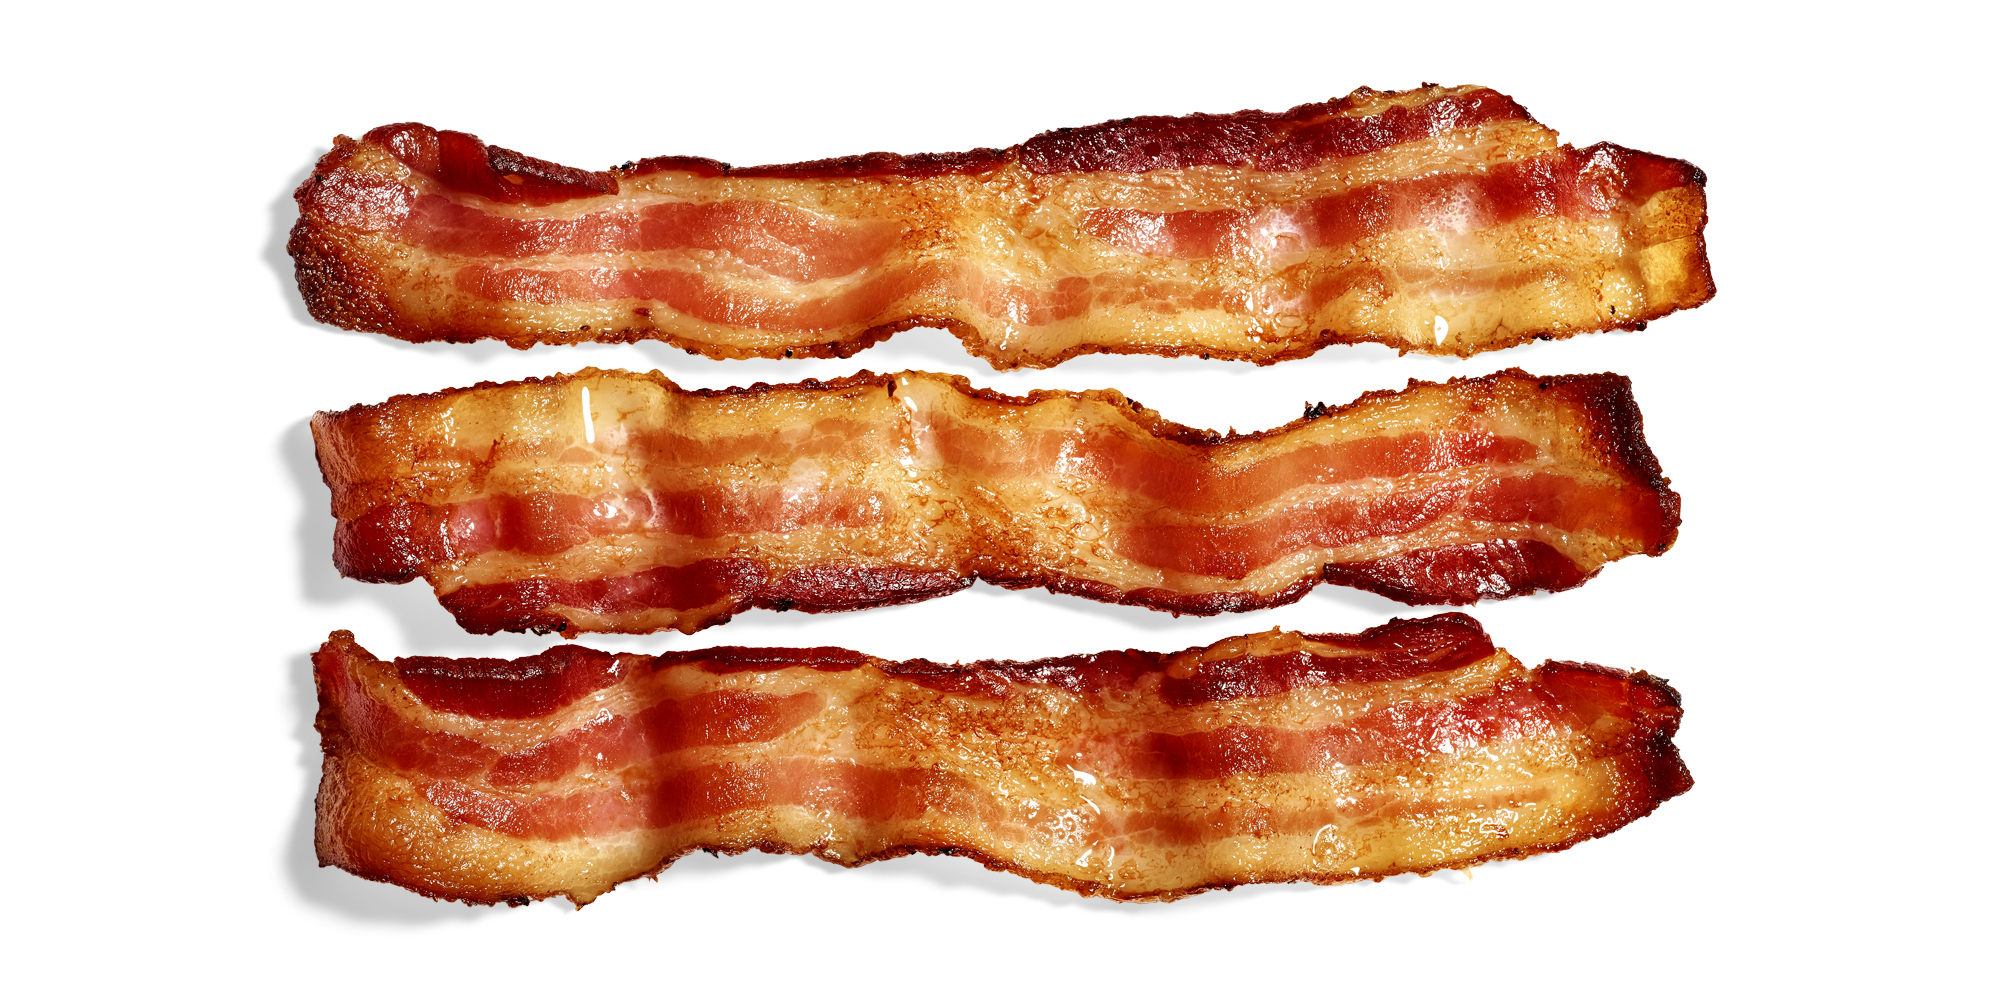 Bedroom Diy Pinterest Here S What You Need To Know About Bacon Health